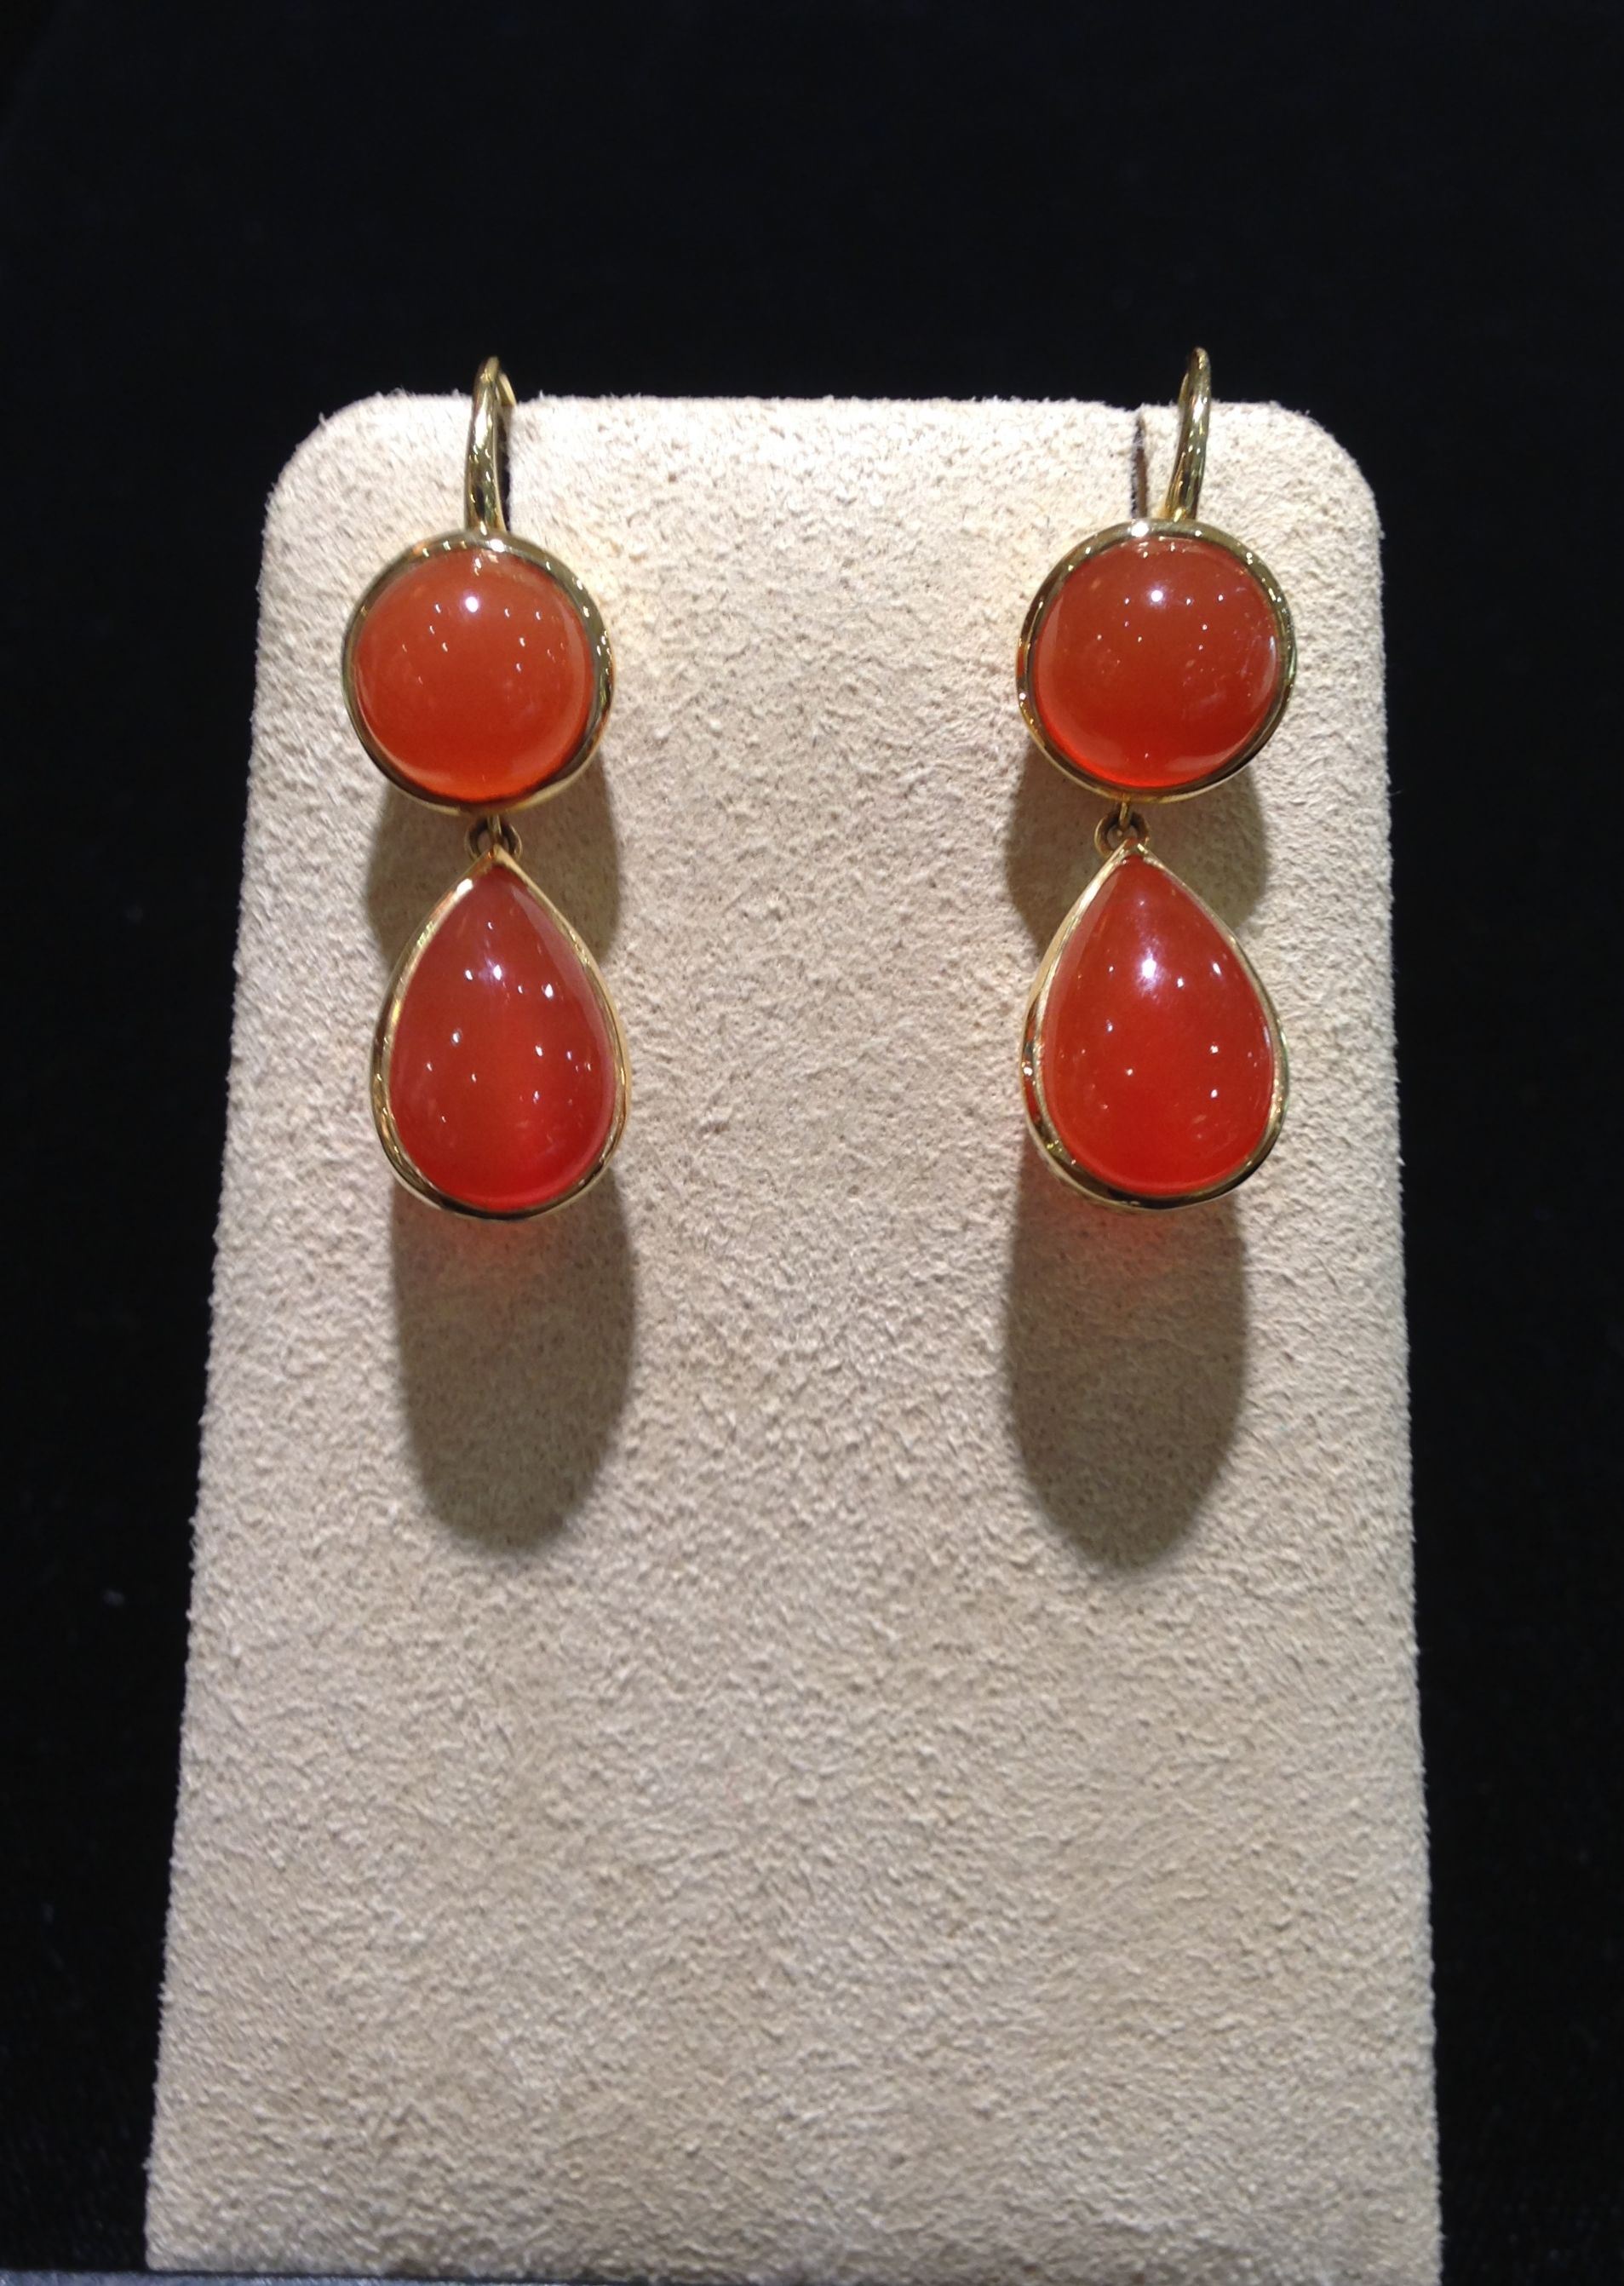 Carnelian drop earrings with crownwork detail in 18k yellow gold by Ray Griffiths.